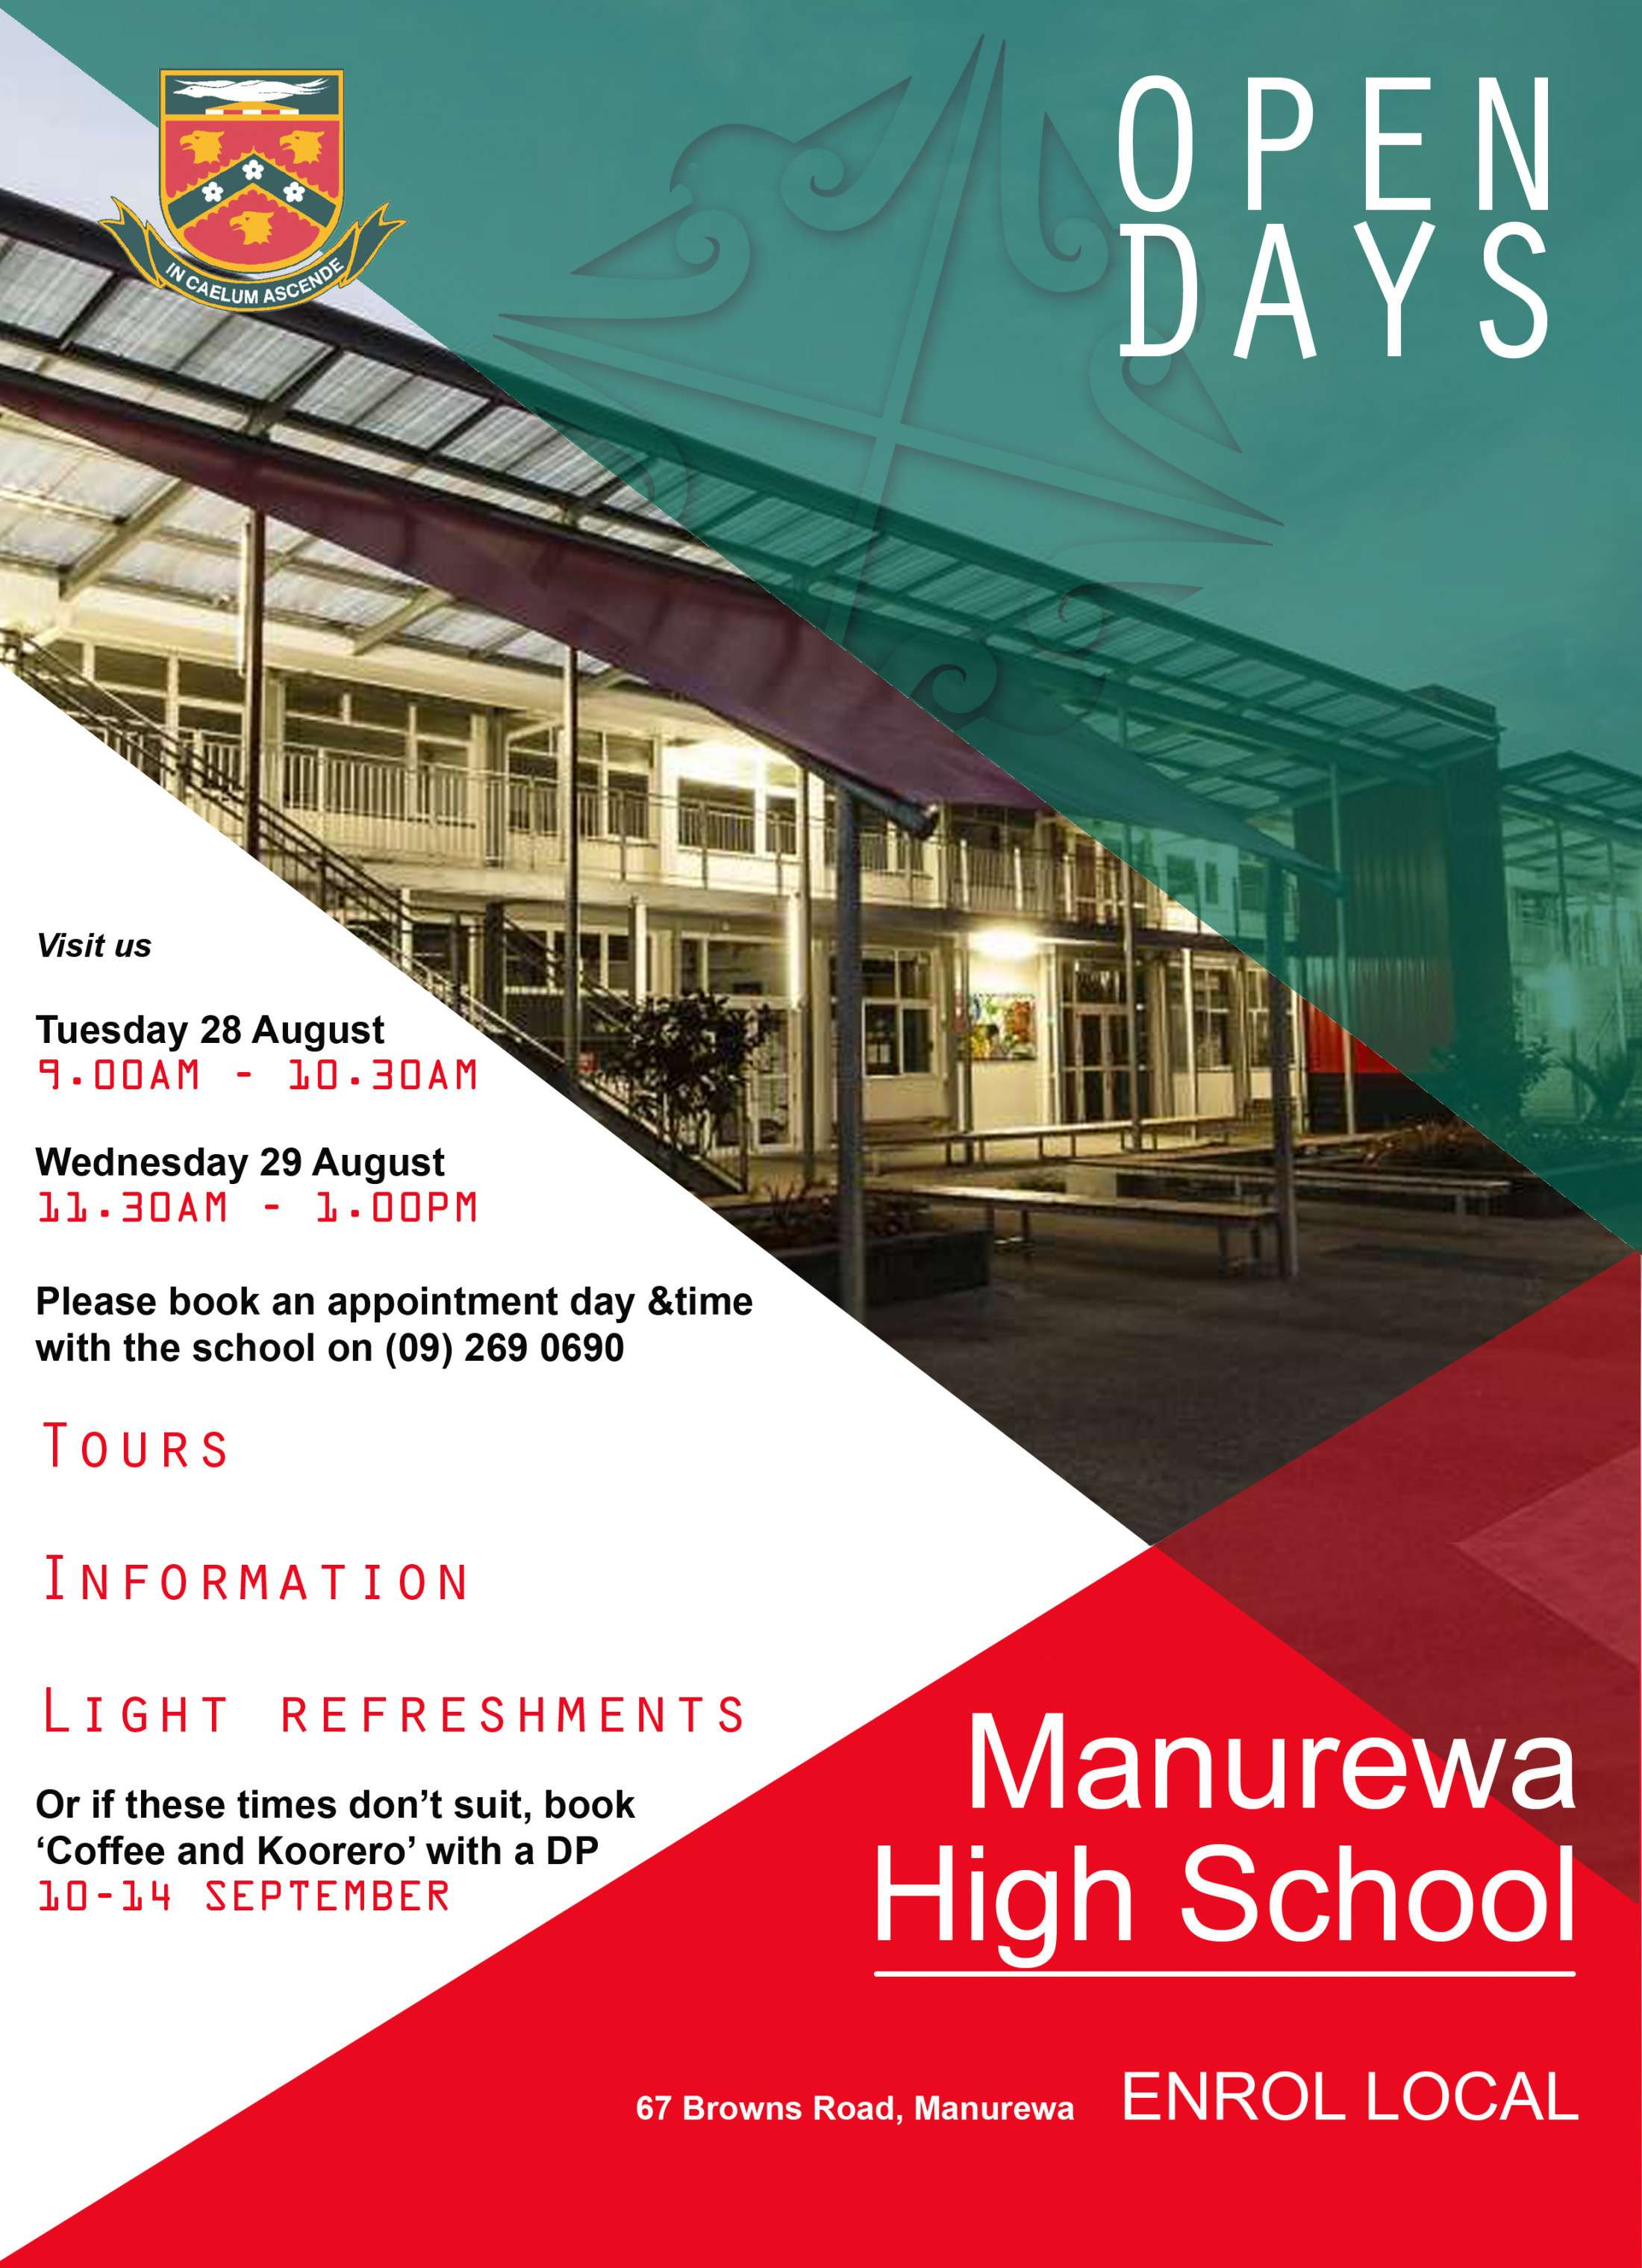 Latest News At Manurewa High School Instructional Pamphlet On Sailing Forums Off Topic Forum Enrolment Open Days